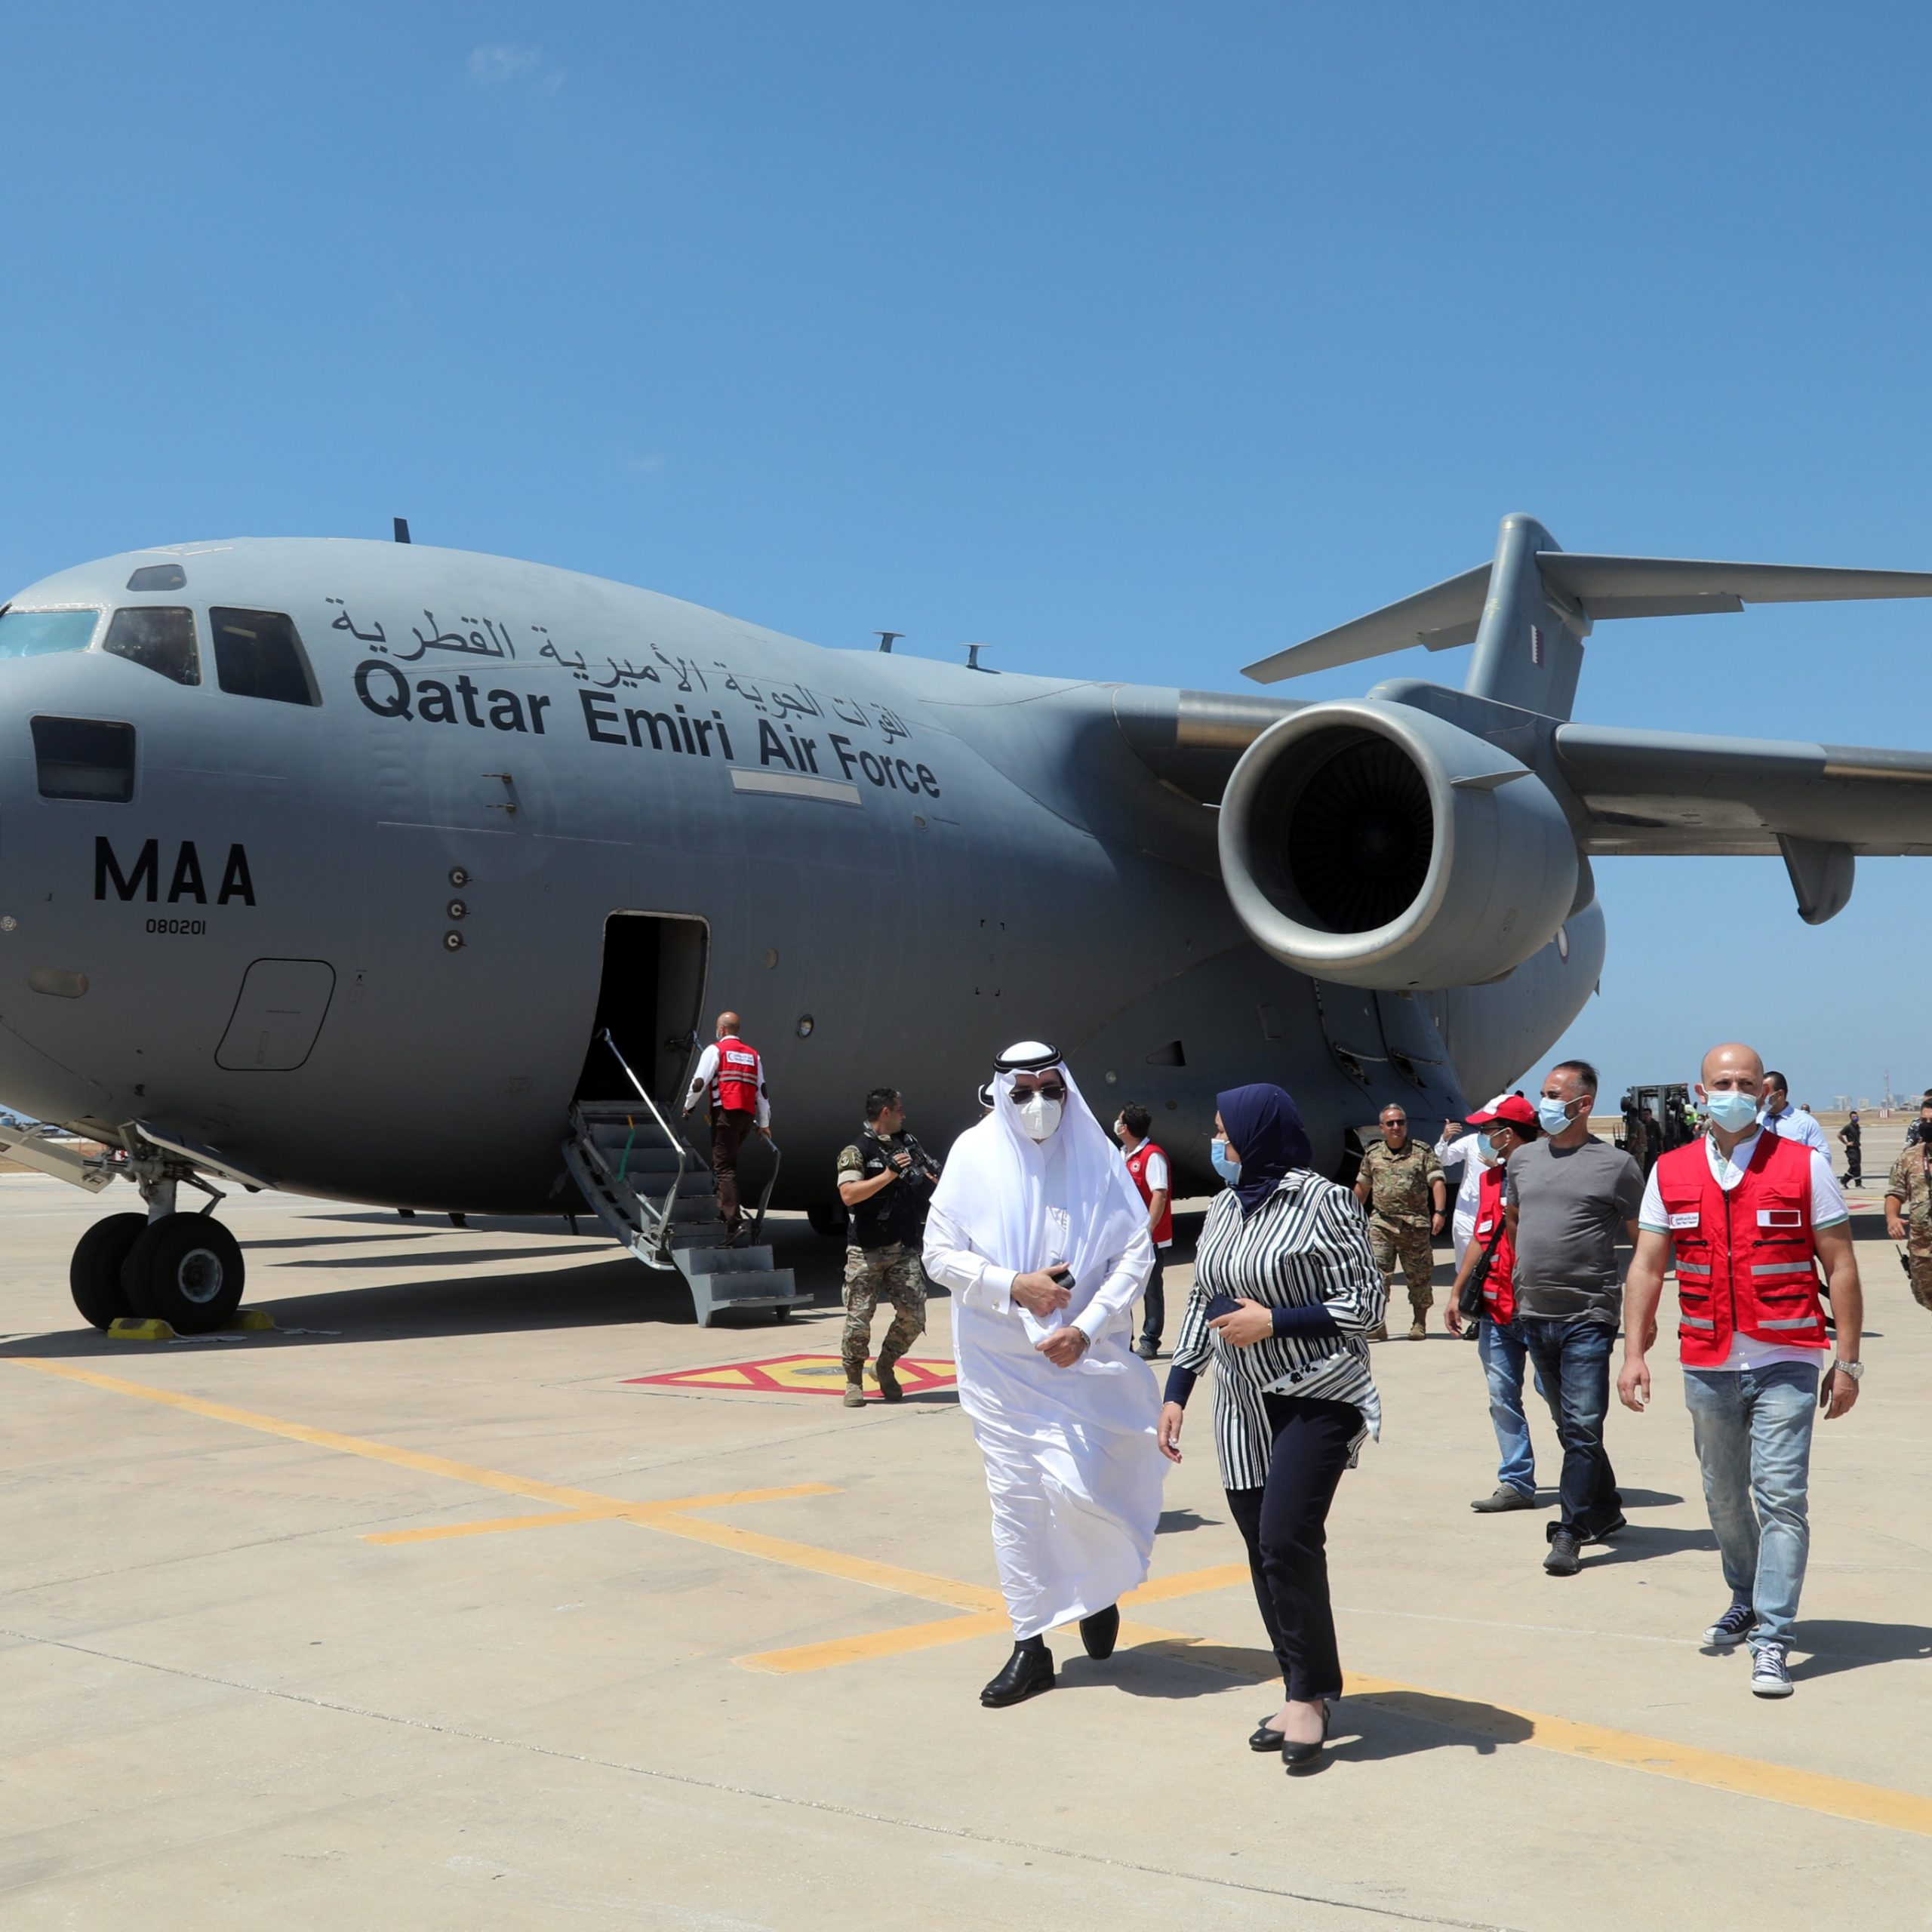 Two cargo aircraft carrying medical aid from Qatar arrive in Beirut